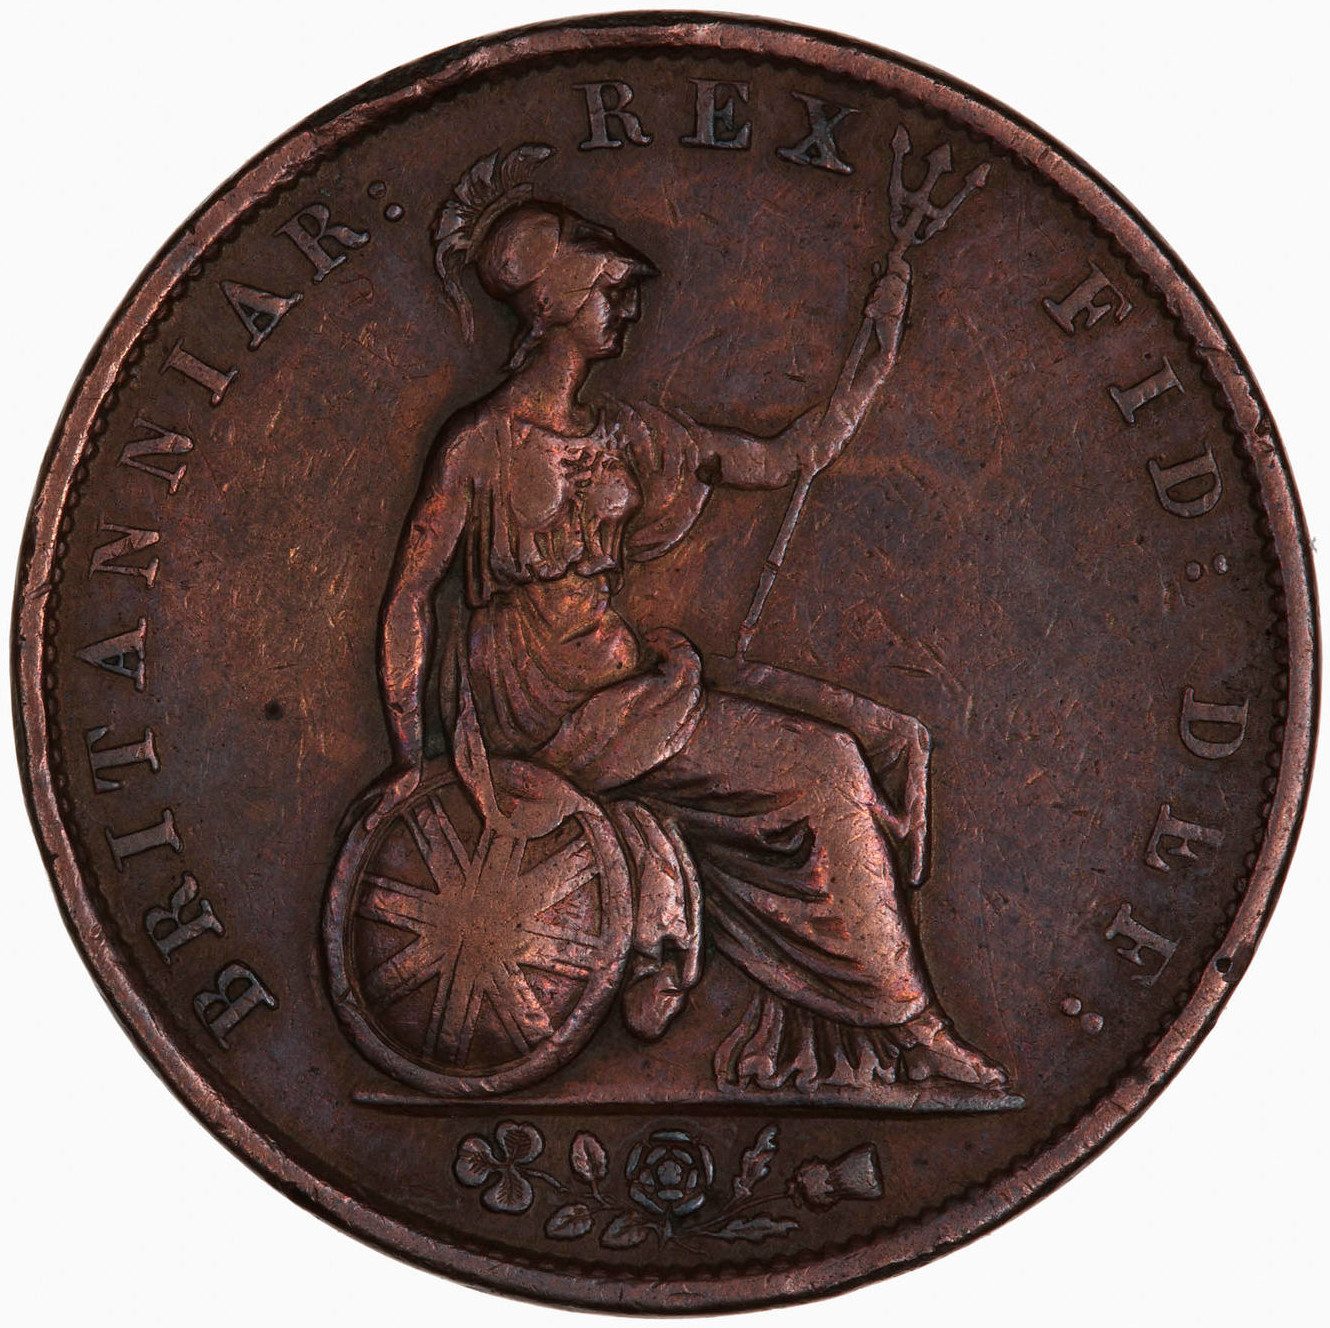 Halfpenny 1834: Photo Coin - Halfpenny, William IV, Great Britain, 1834